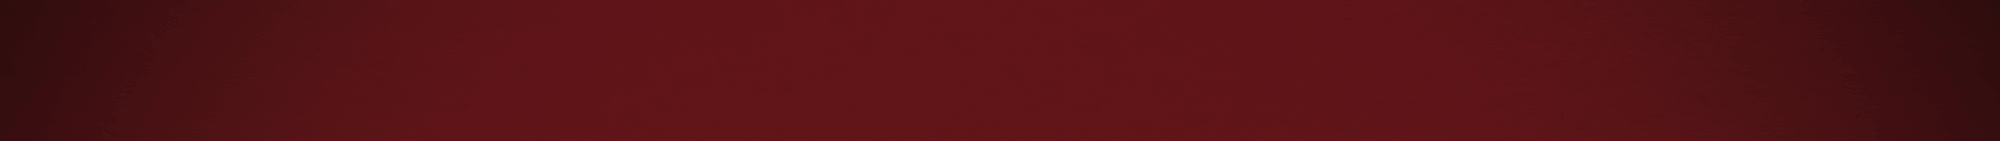 red-paper-texture-min